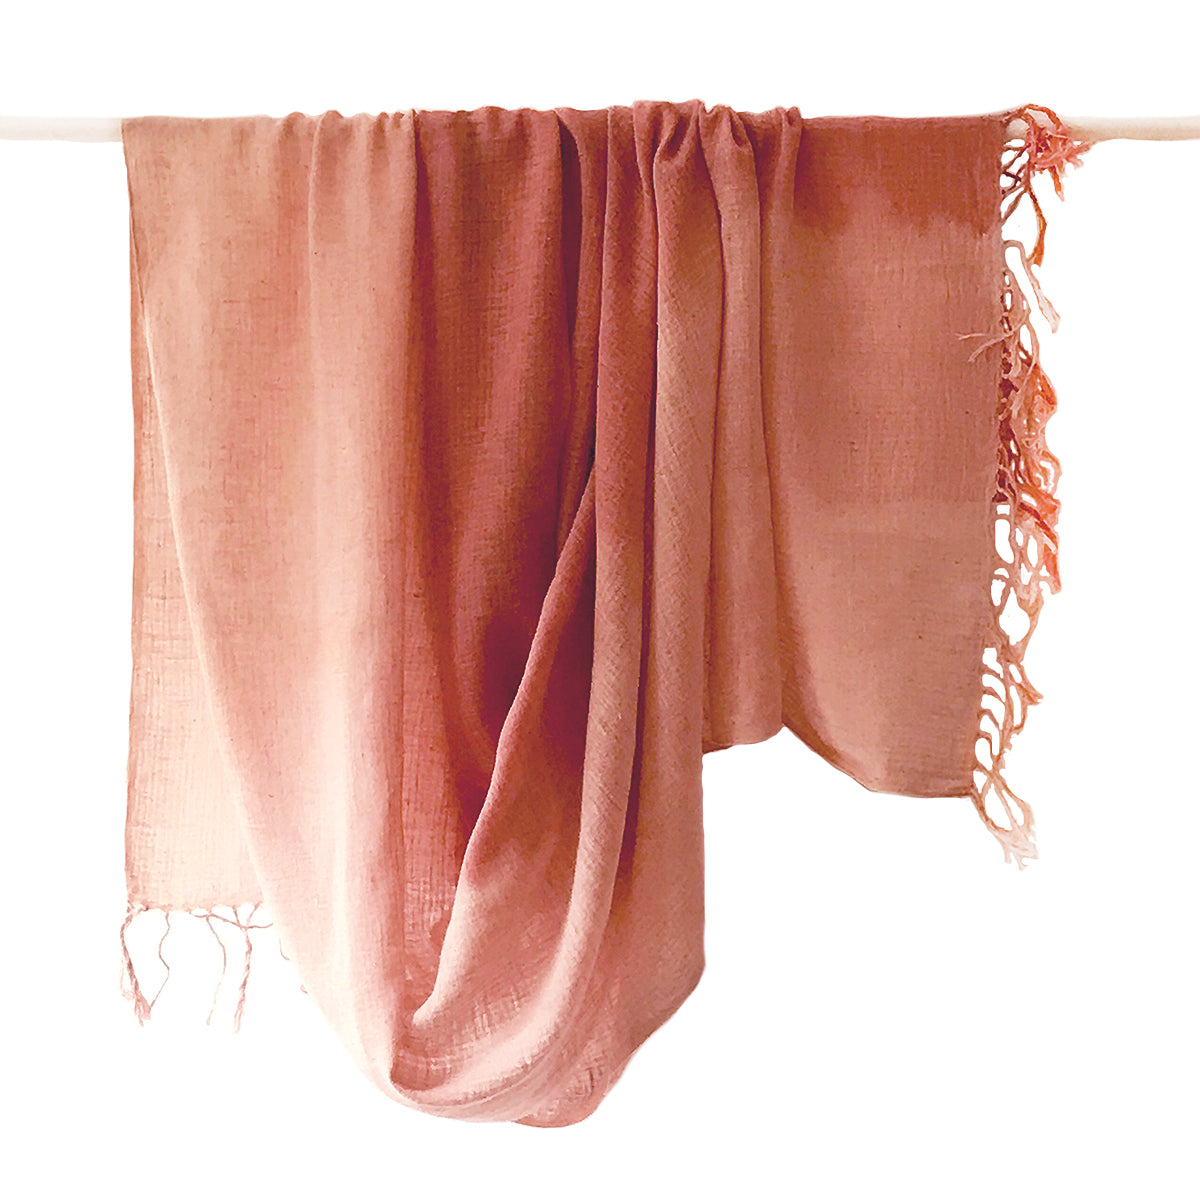 WomenWeave Organic Handspun Cotton Shawl - Color Block - Dusty Rose from Sprout Enterprise®